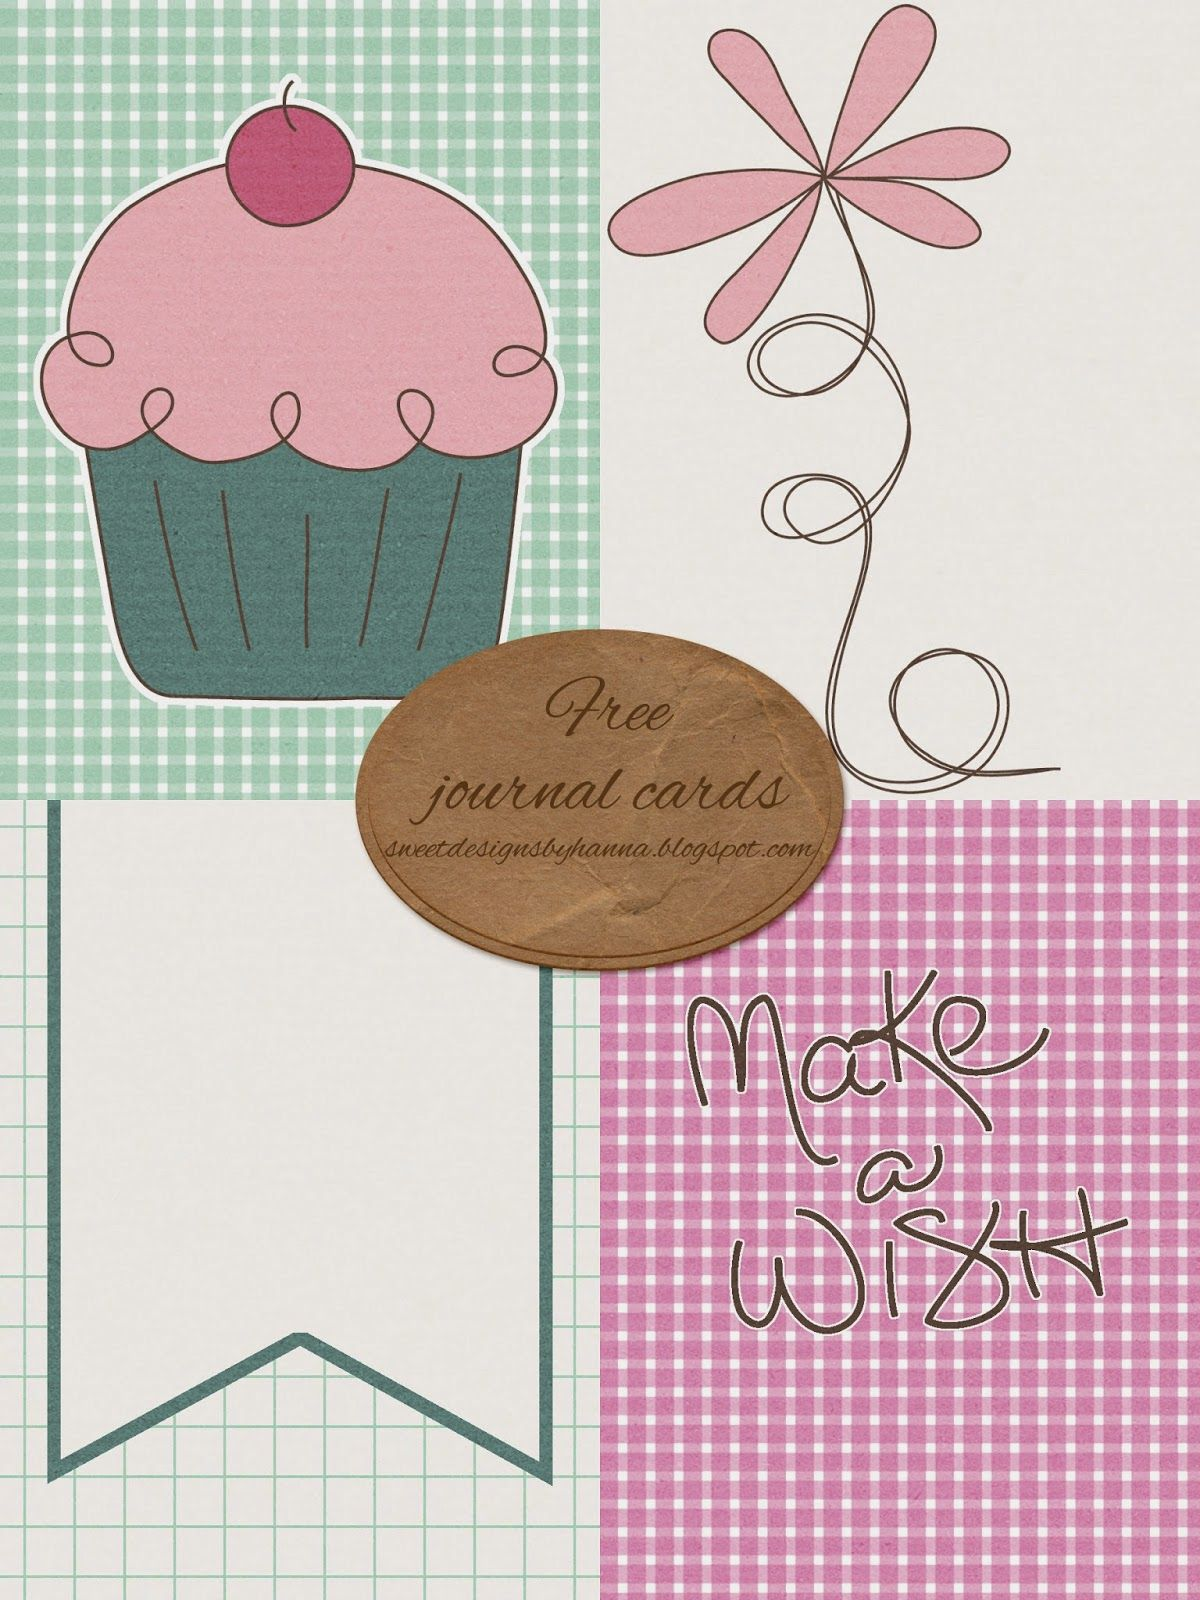 FREE Make a Wish - Journal Cards By Sweet Designs By Hanna